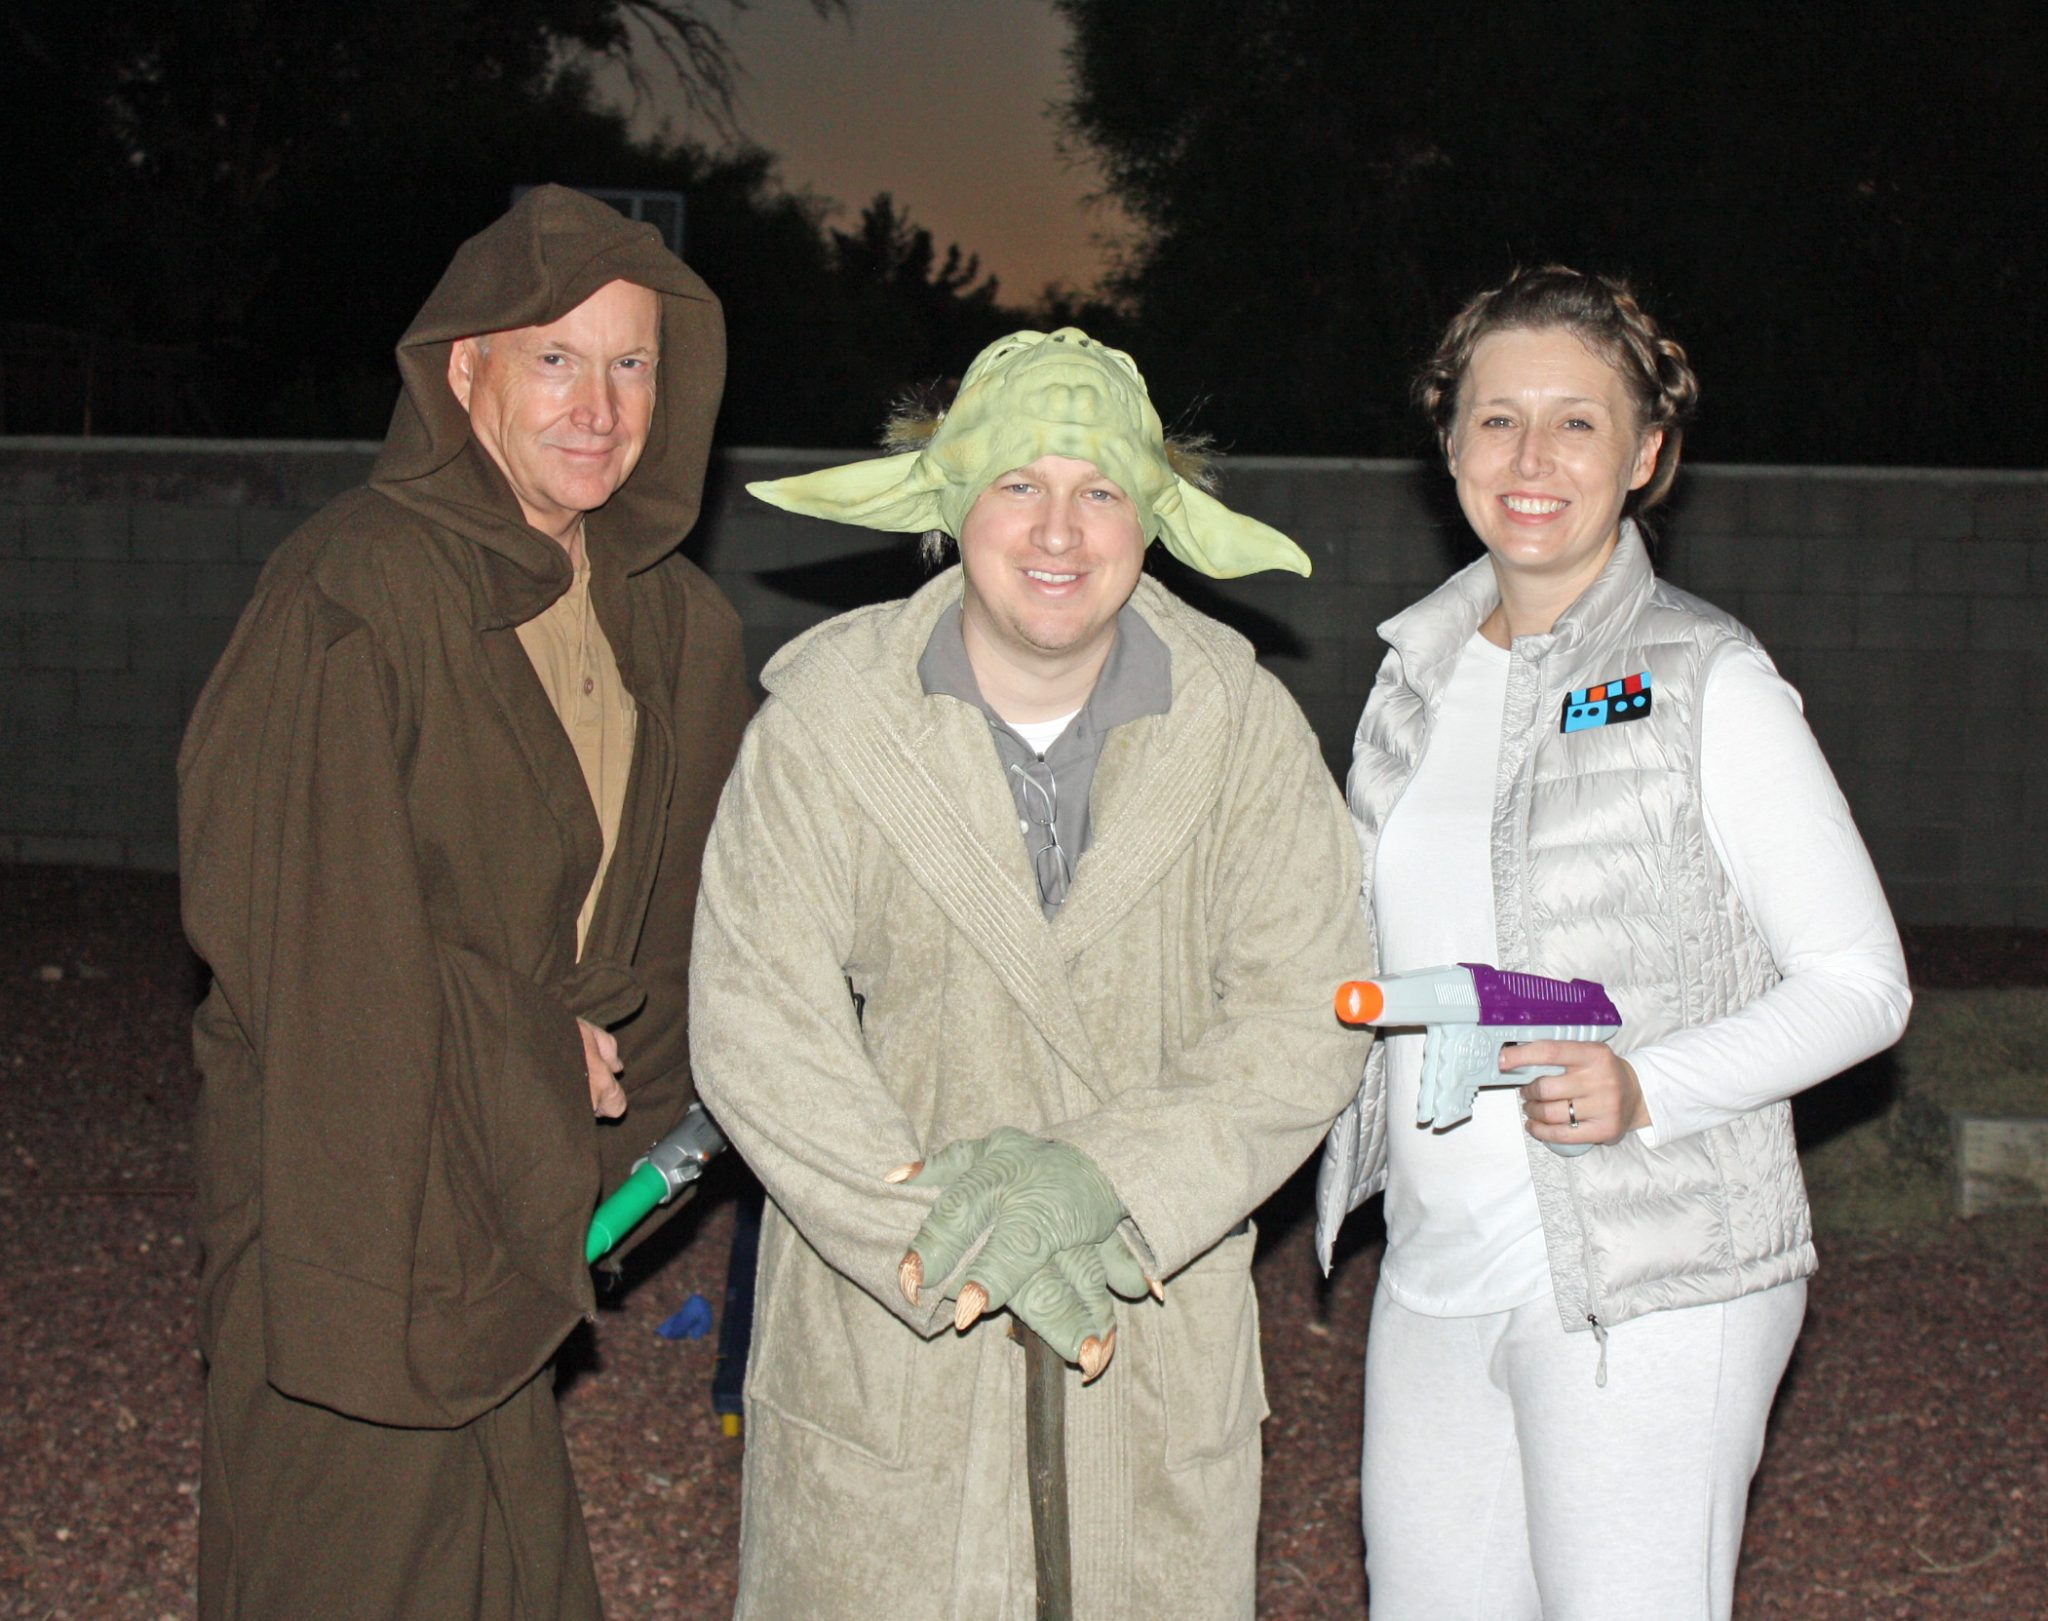 Diy star wars costume ideas desert chica jedi leia yoda star wars costumes solutioingenieria